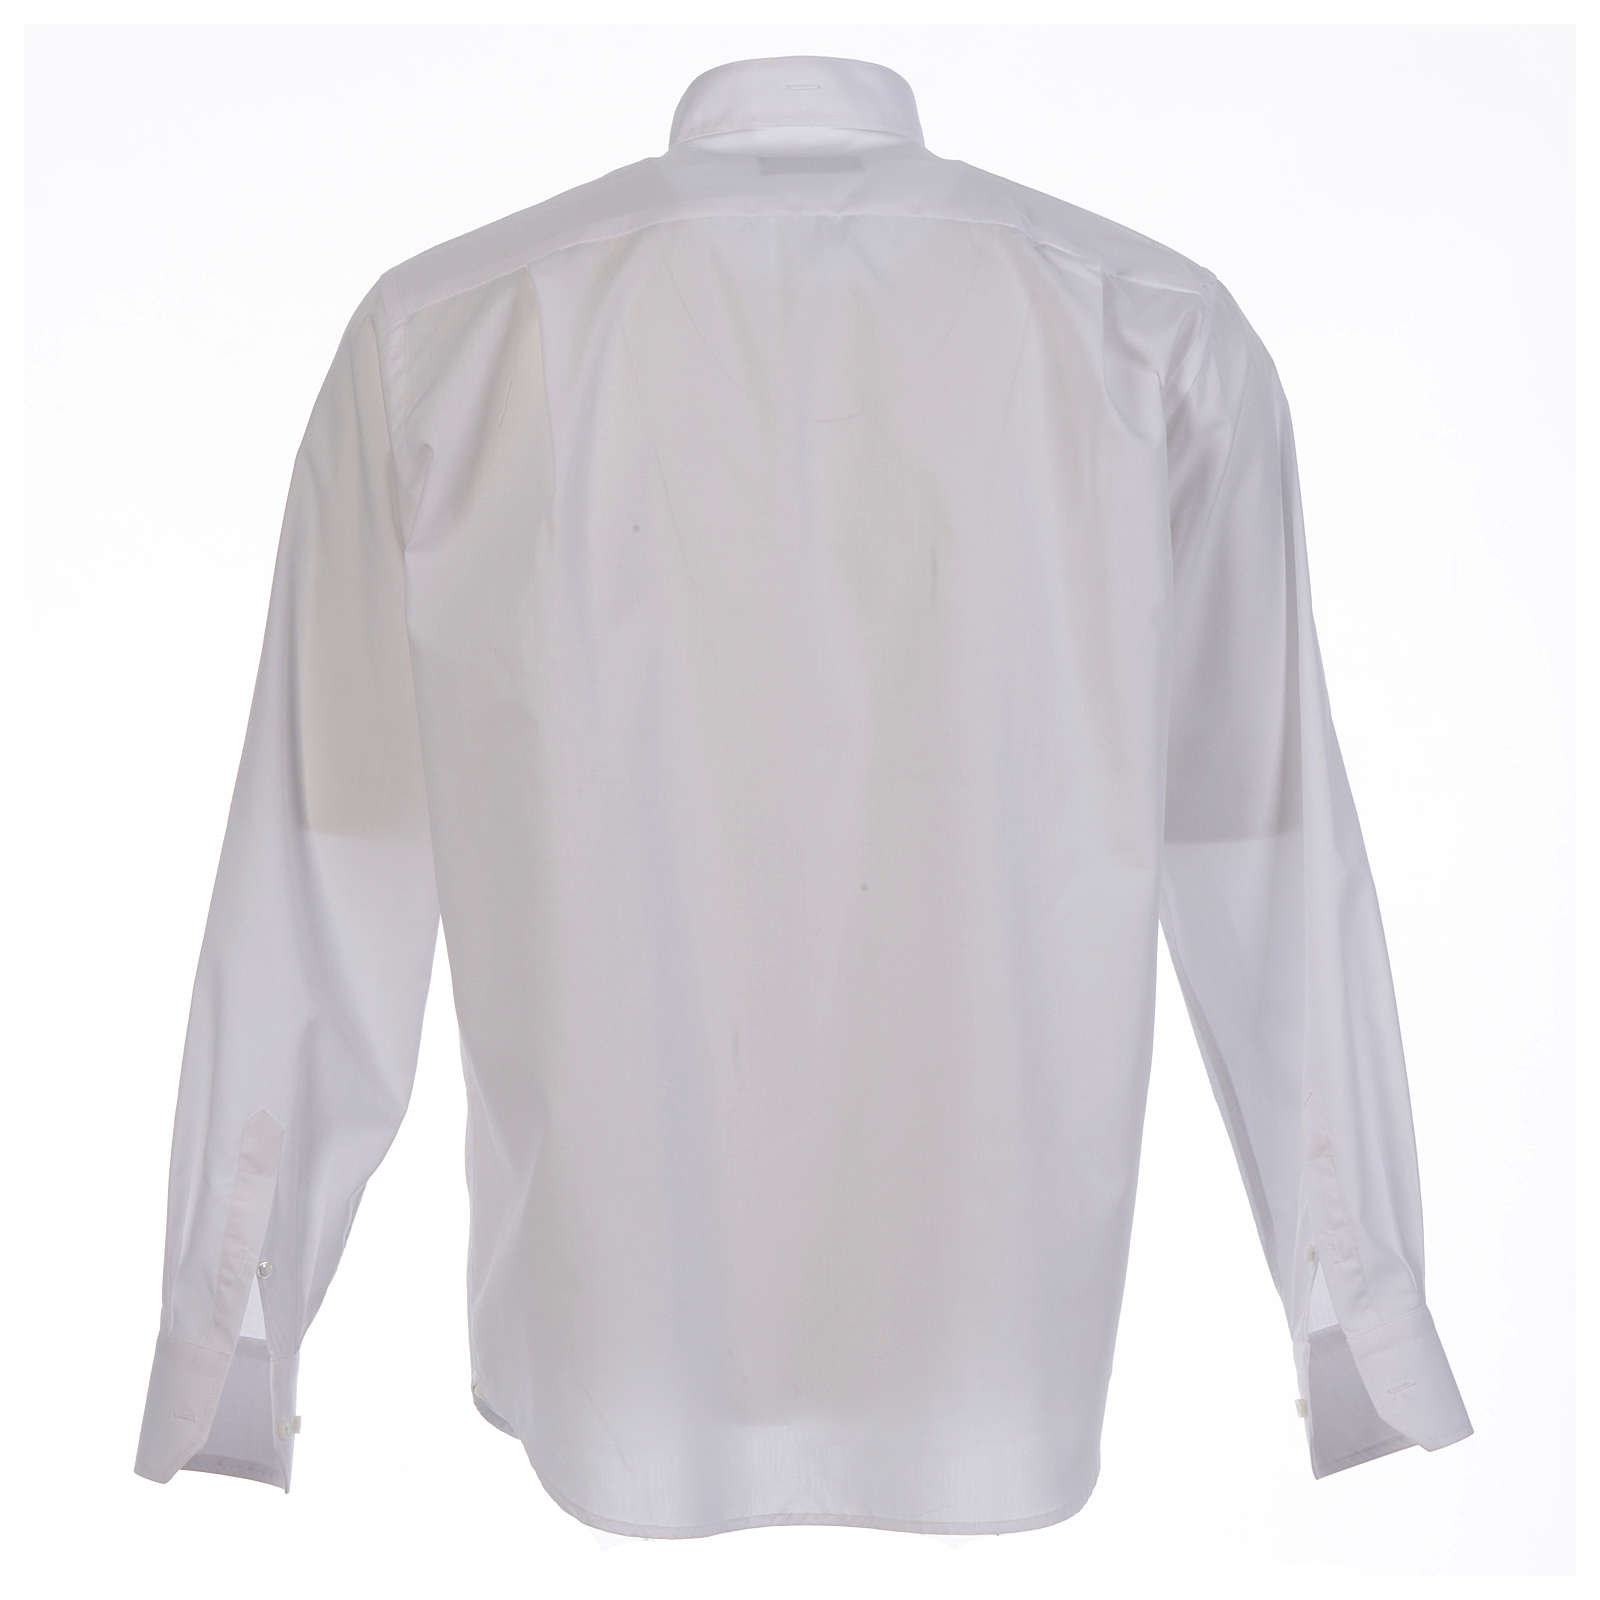 4cb41a1fdf5 100 Percent Cotton Clergy Shirts – EDGE Engineering and Consulting ...